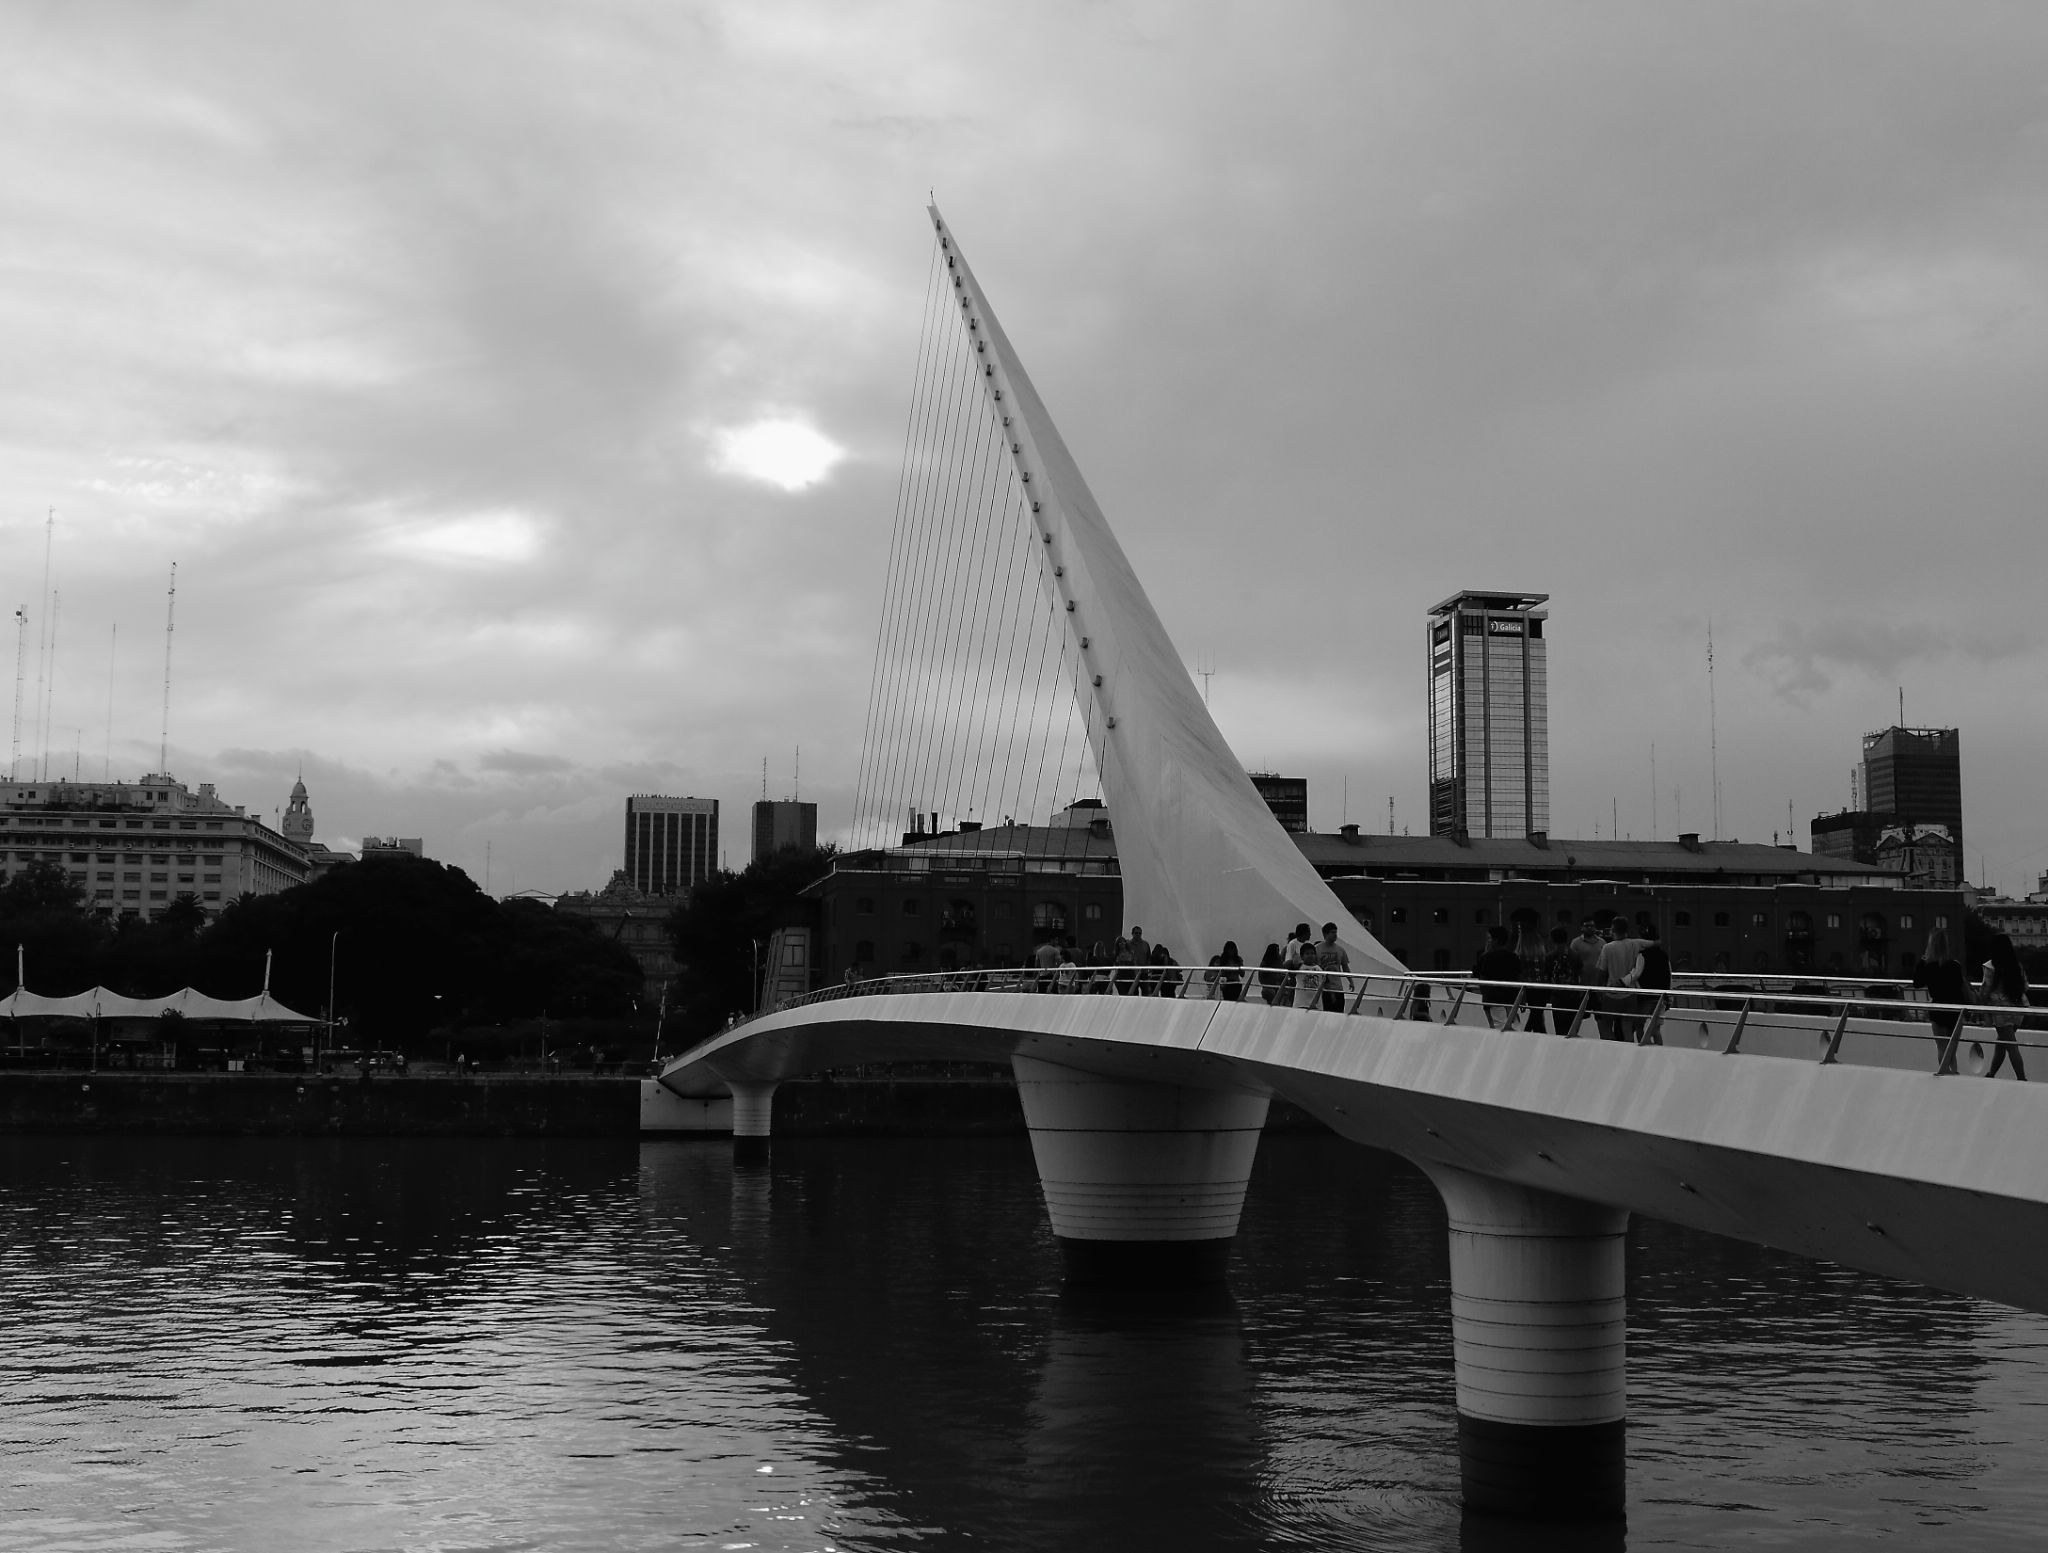 The Bridge of the Woman by pablomorra